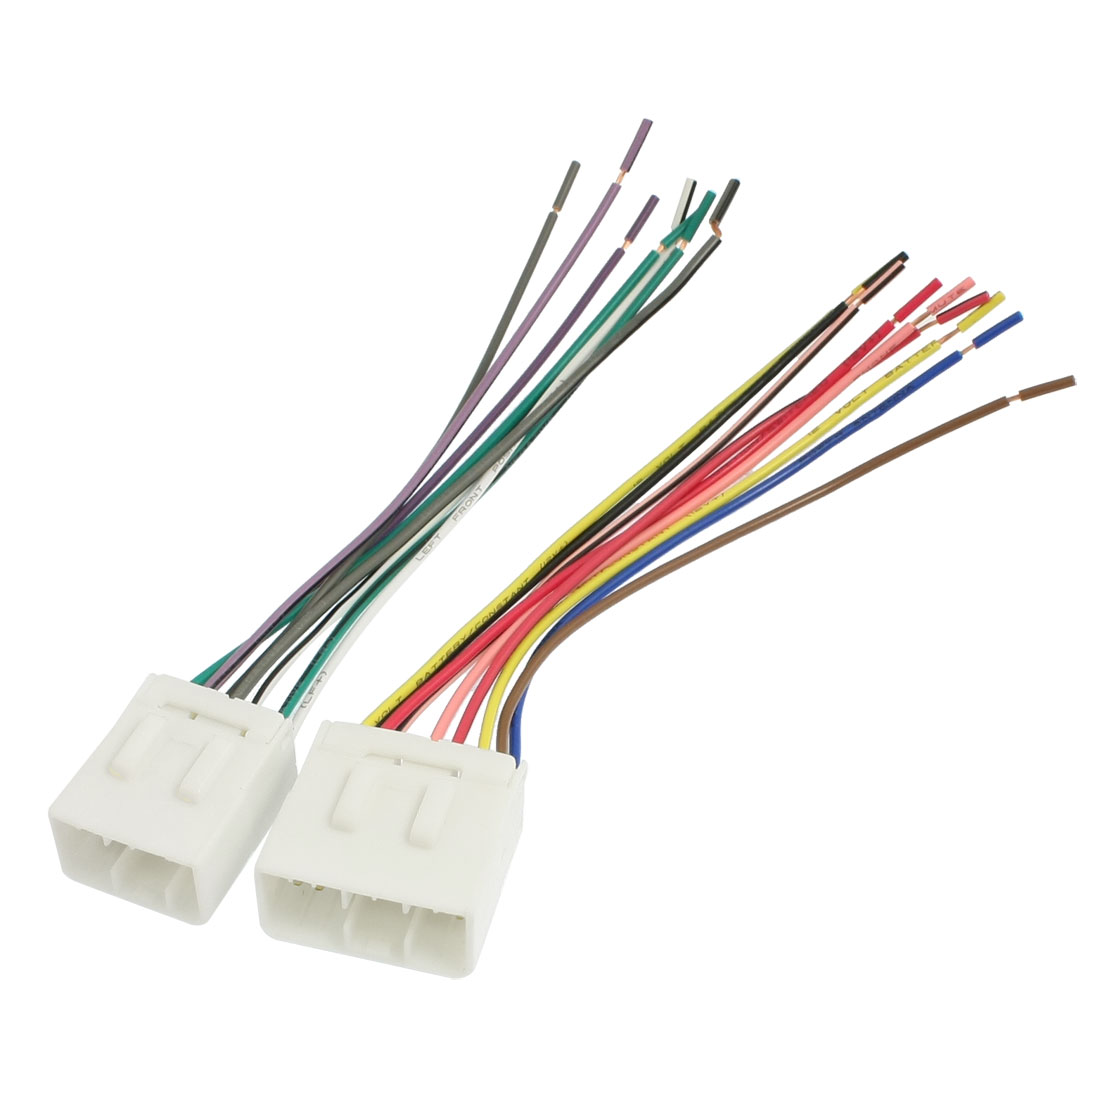 2 Pcs Auto Car DVD Stereo Wire Harness Male for Geely Emgrand